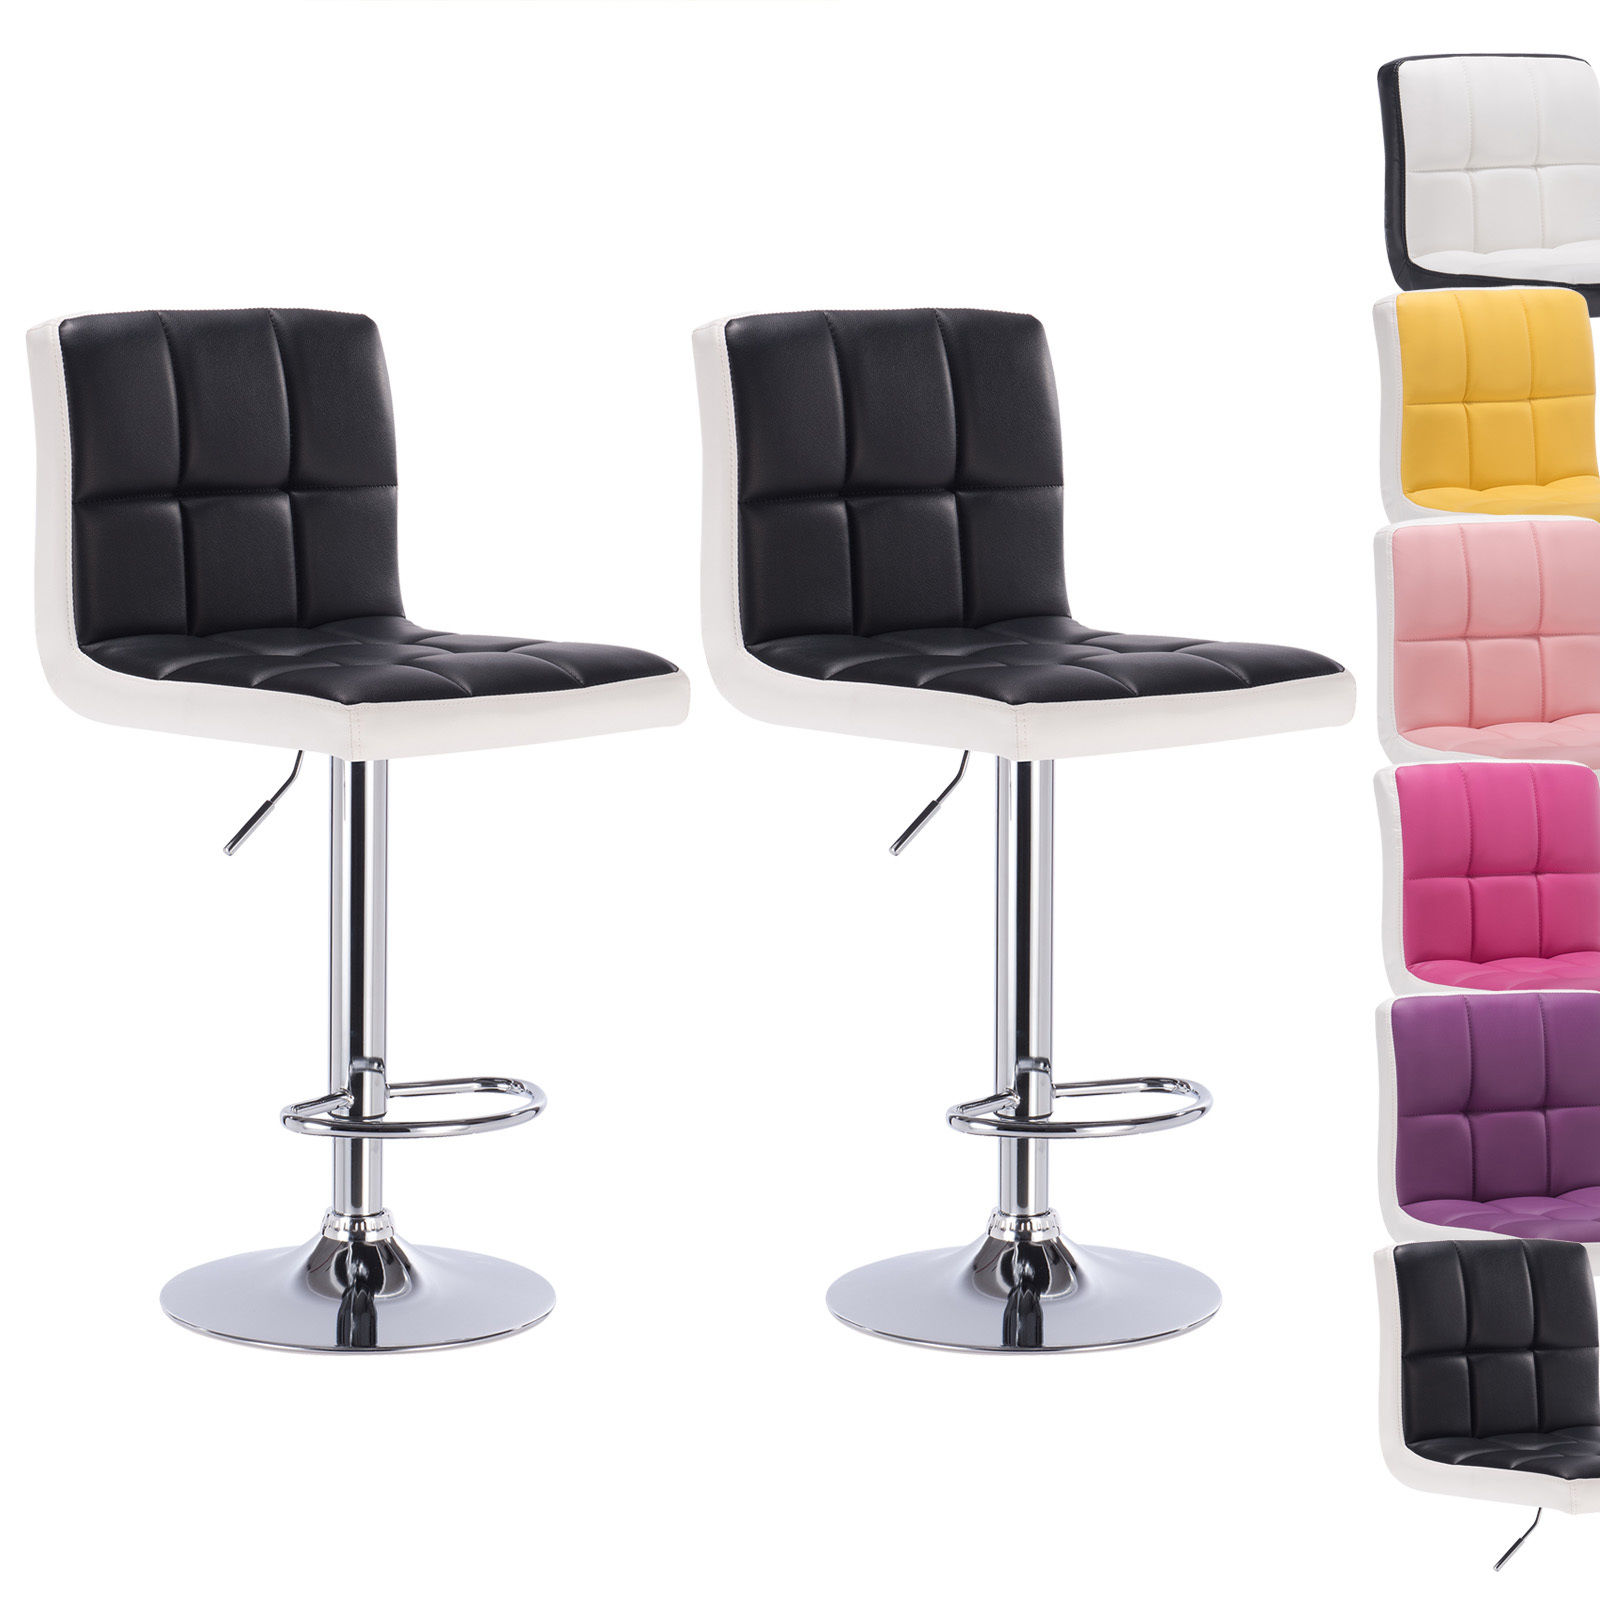 2PCS Soft PU Leather Bar Chair Adjustable Lifting High Stool Bar Chair Modern Kitchen Living Room Swivel Bar Chair Funiture HWC